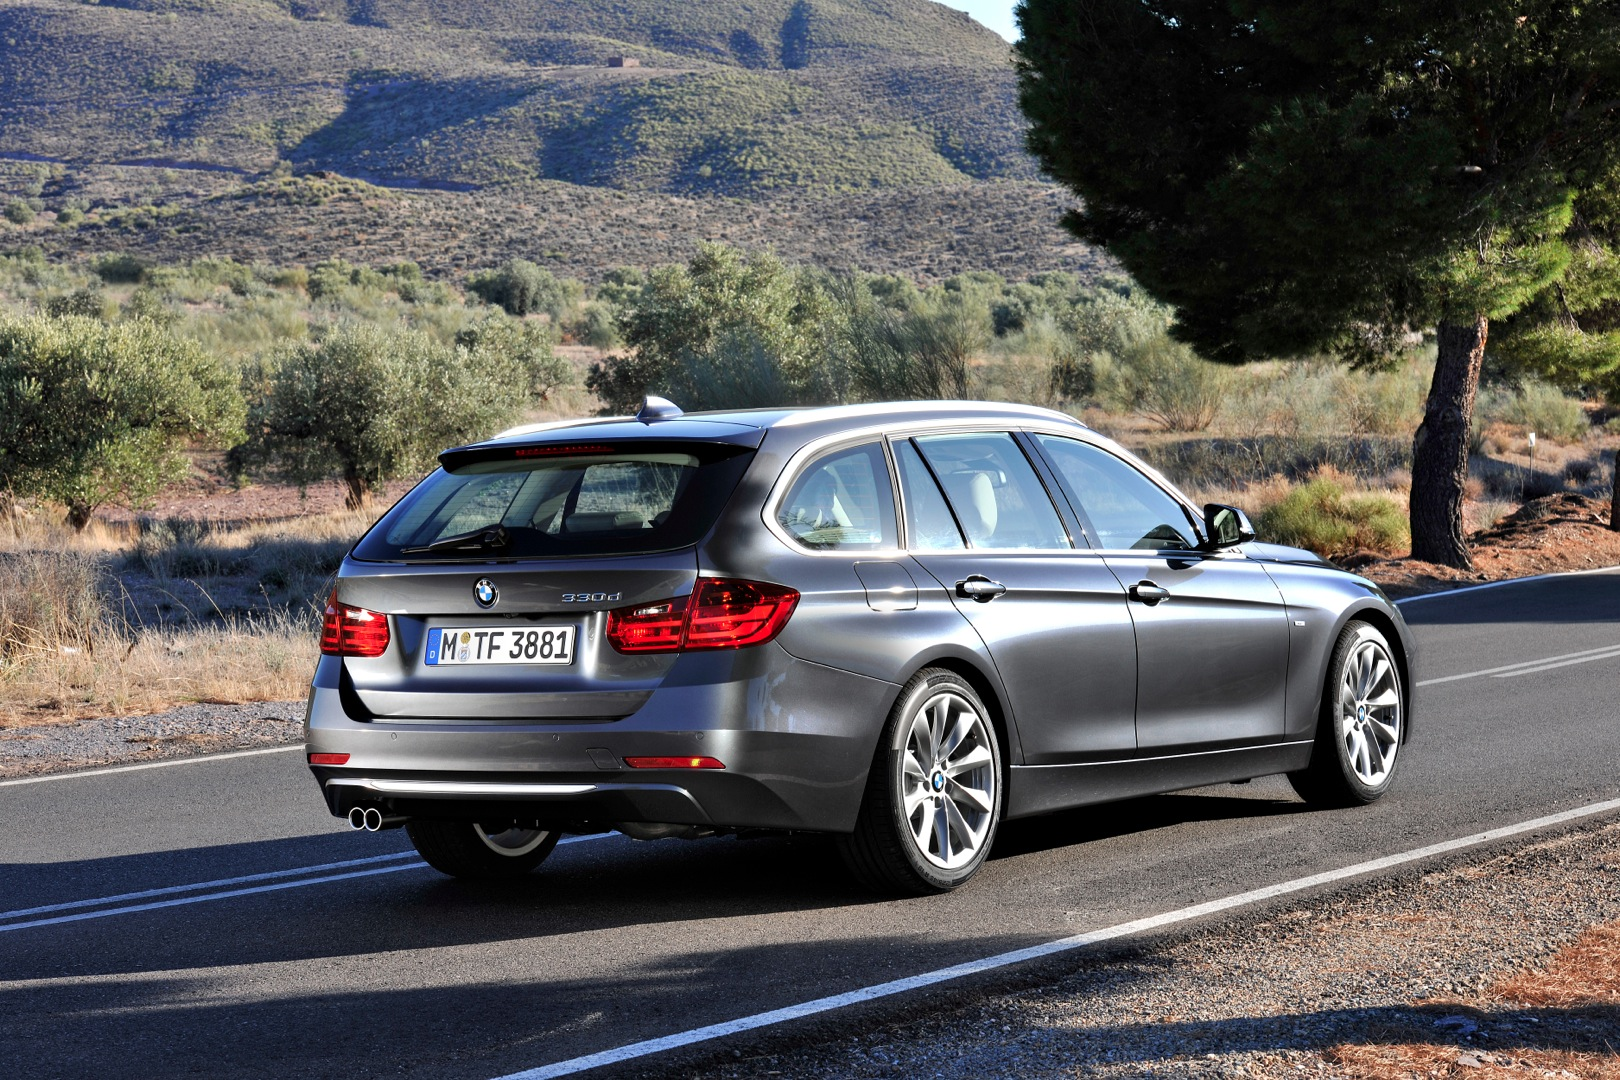 Bmw F30 320i Xdrive Touring Review By Top Gear Autoevolution